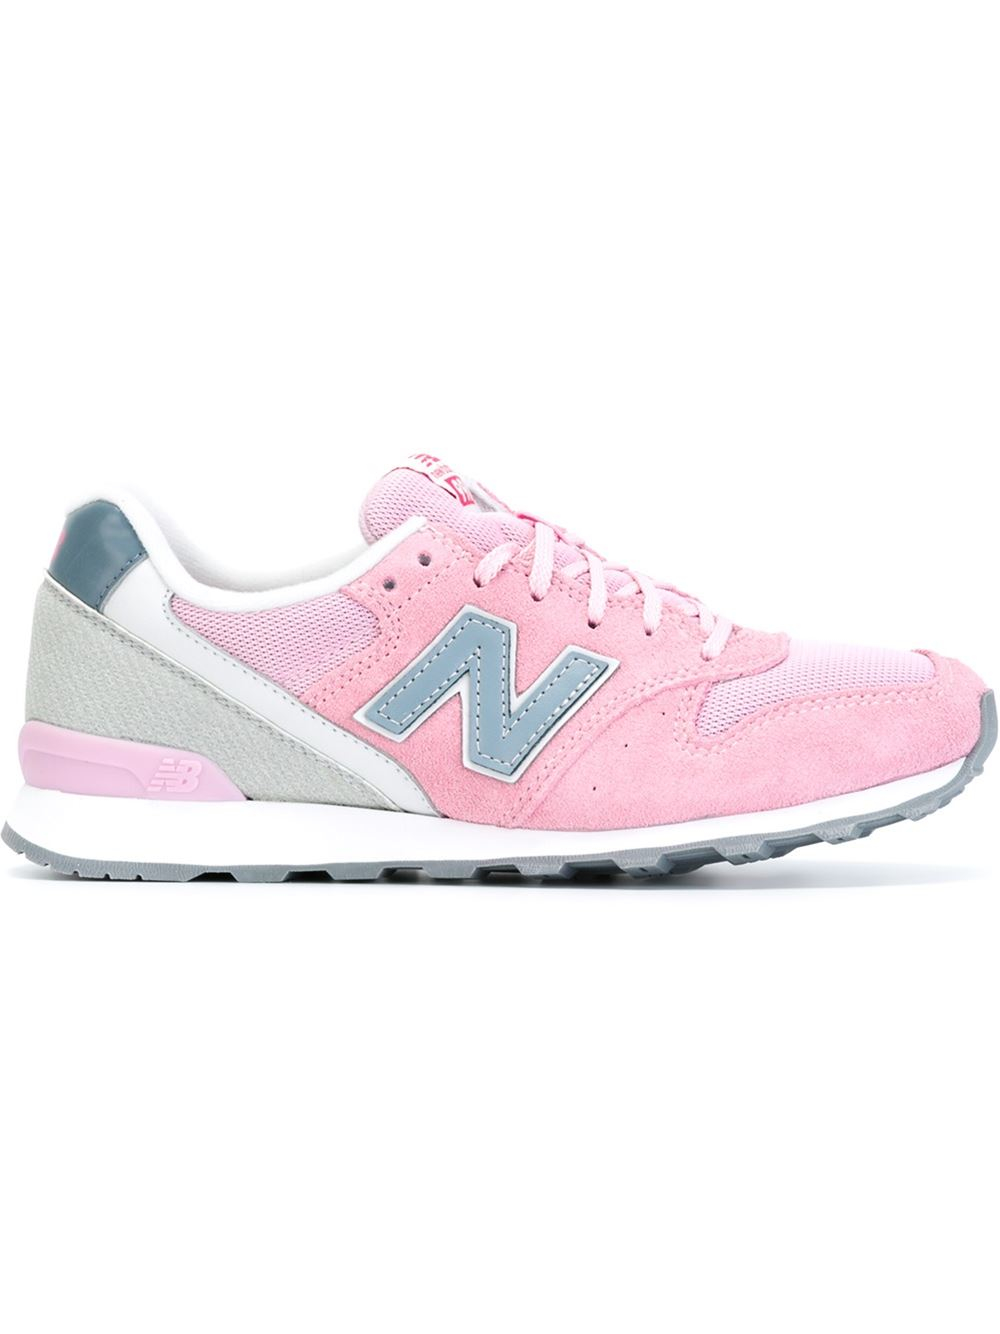 New Balance '966' Sneakers in Pink & Purple (Pink) - Lyst